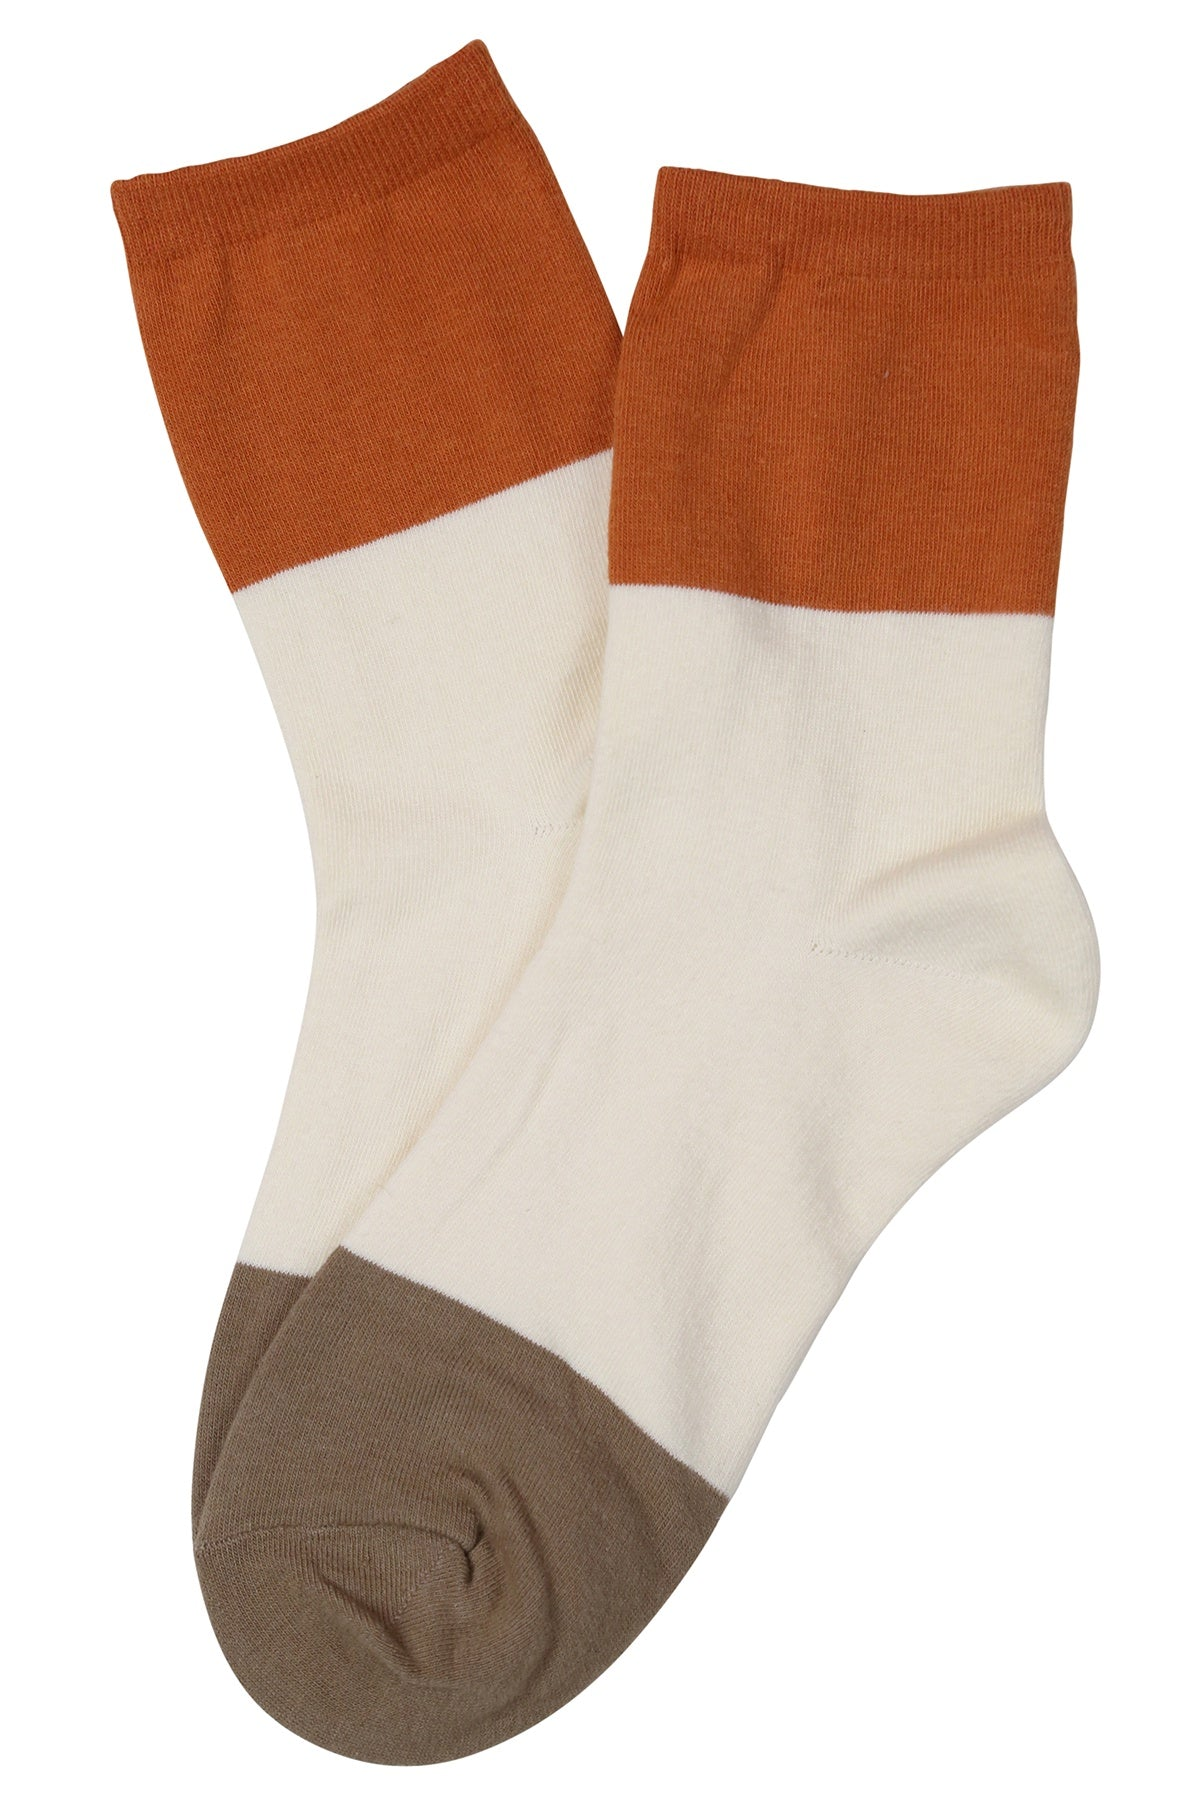 Squared Off Cotton Socks White